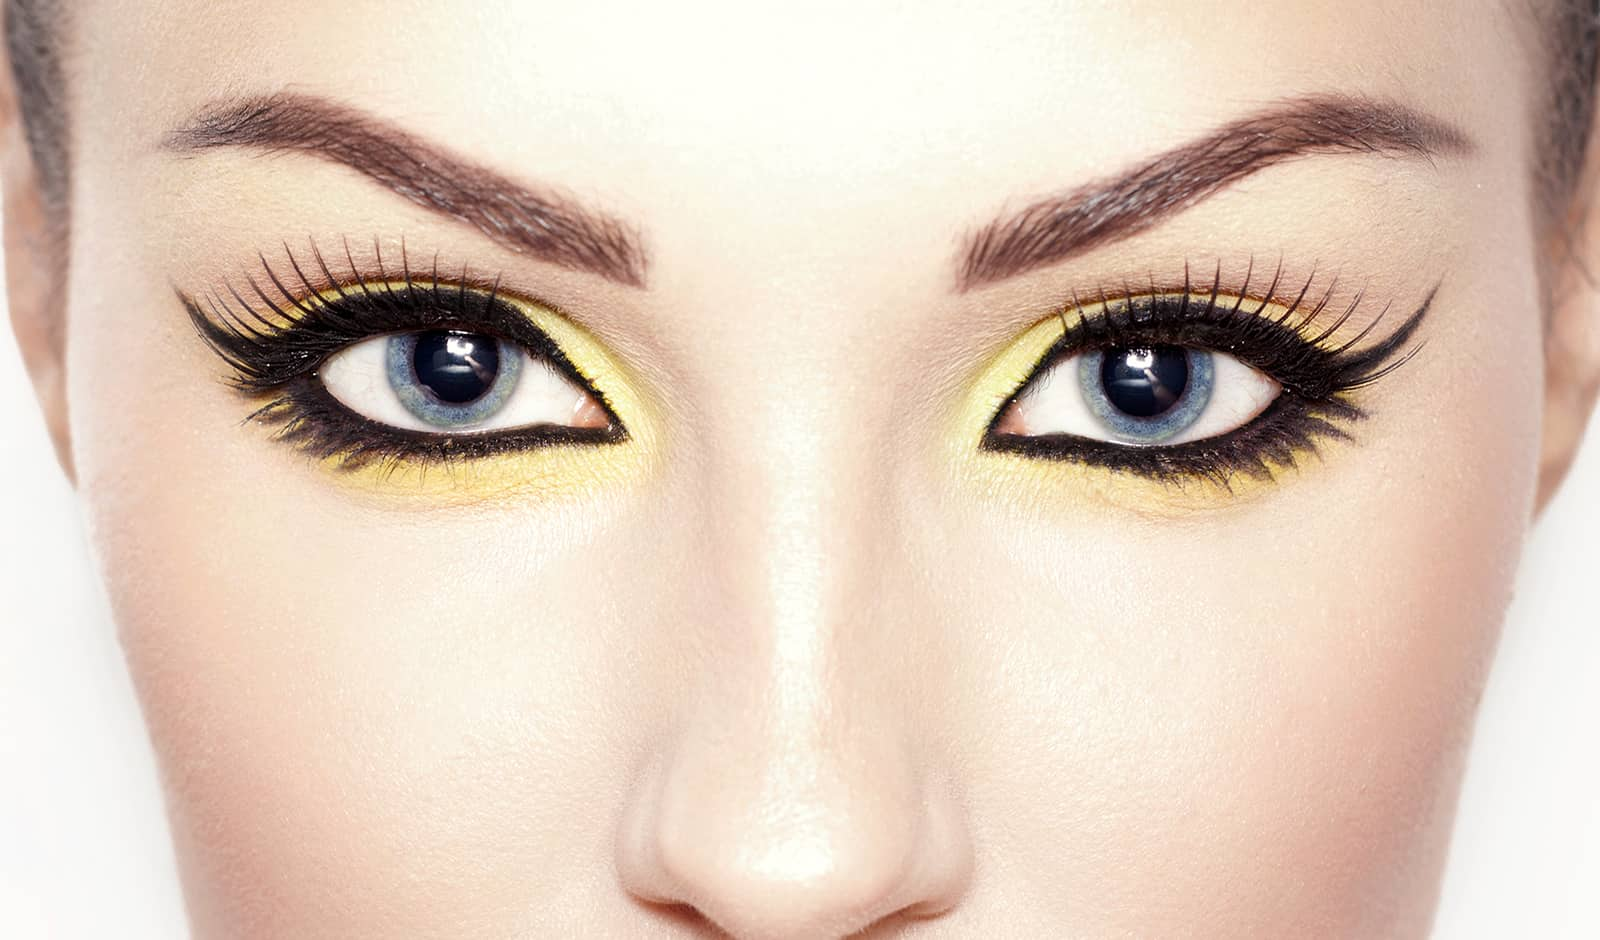 how-to-match-your-colored-contact-lenses-to-your-eye-makeup-main-image